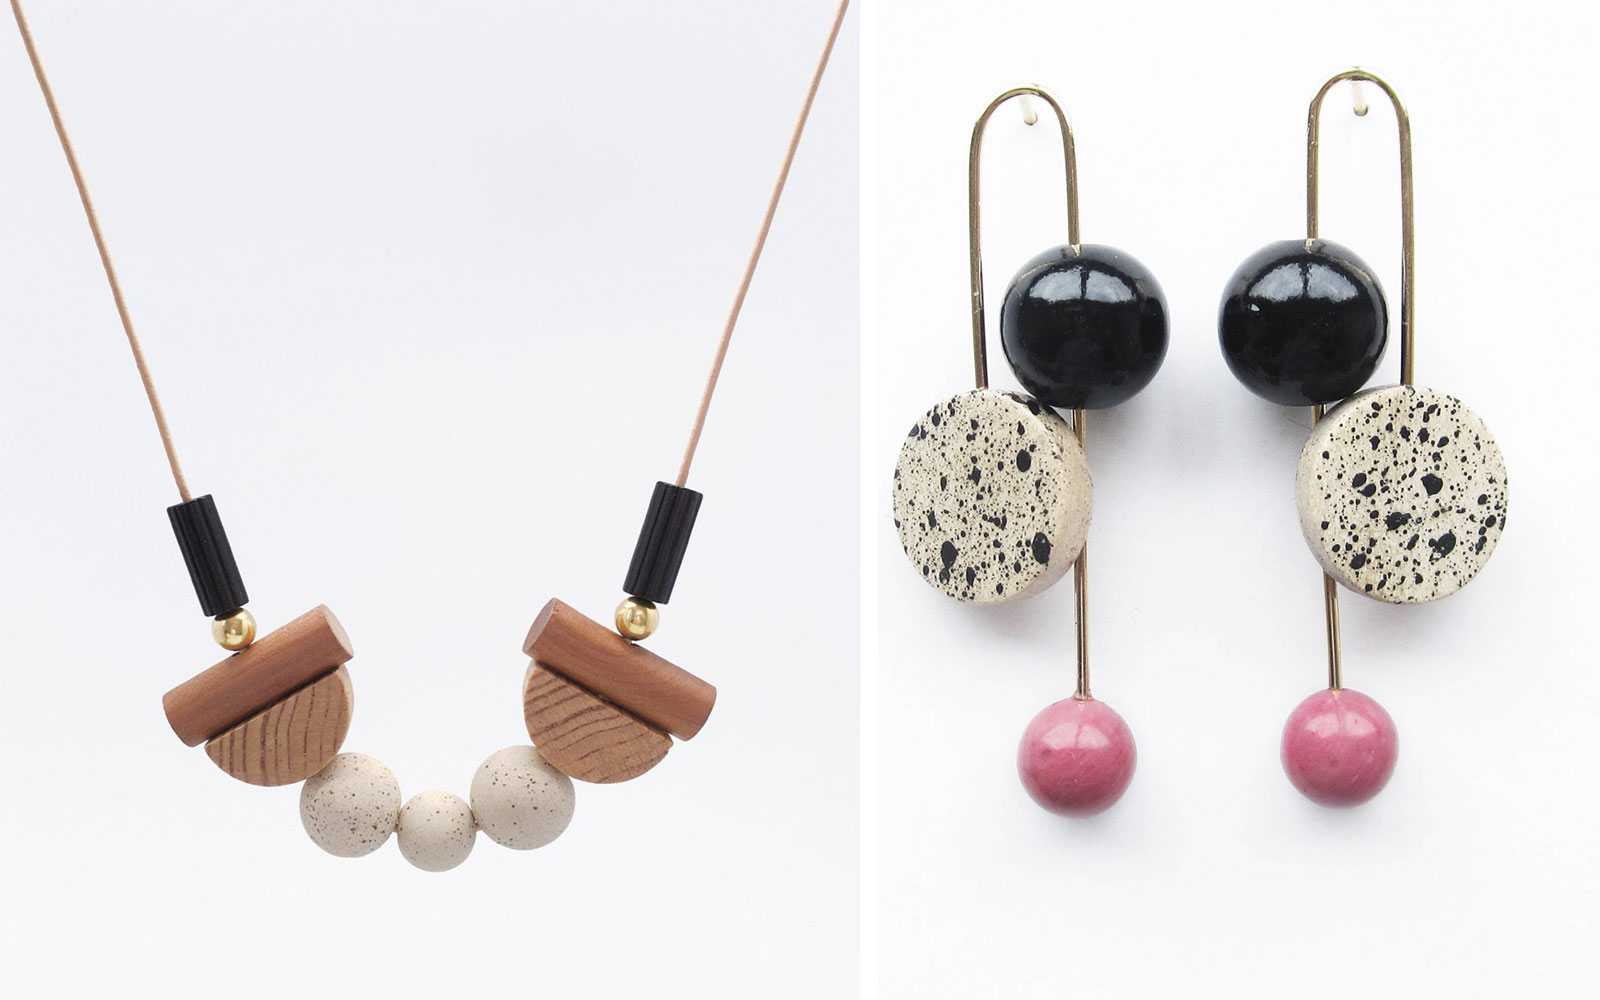 Spain: Sculptural Jewelry